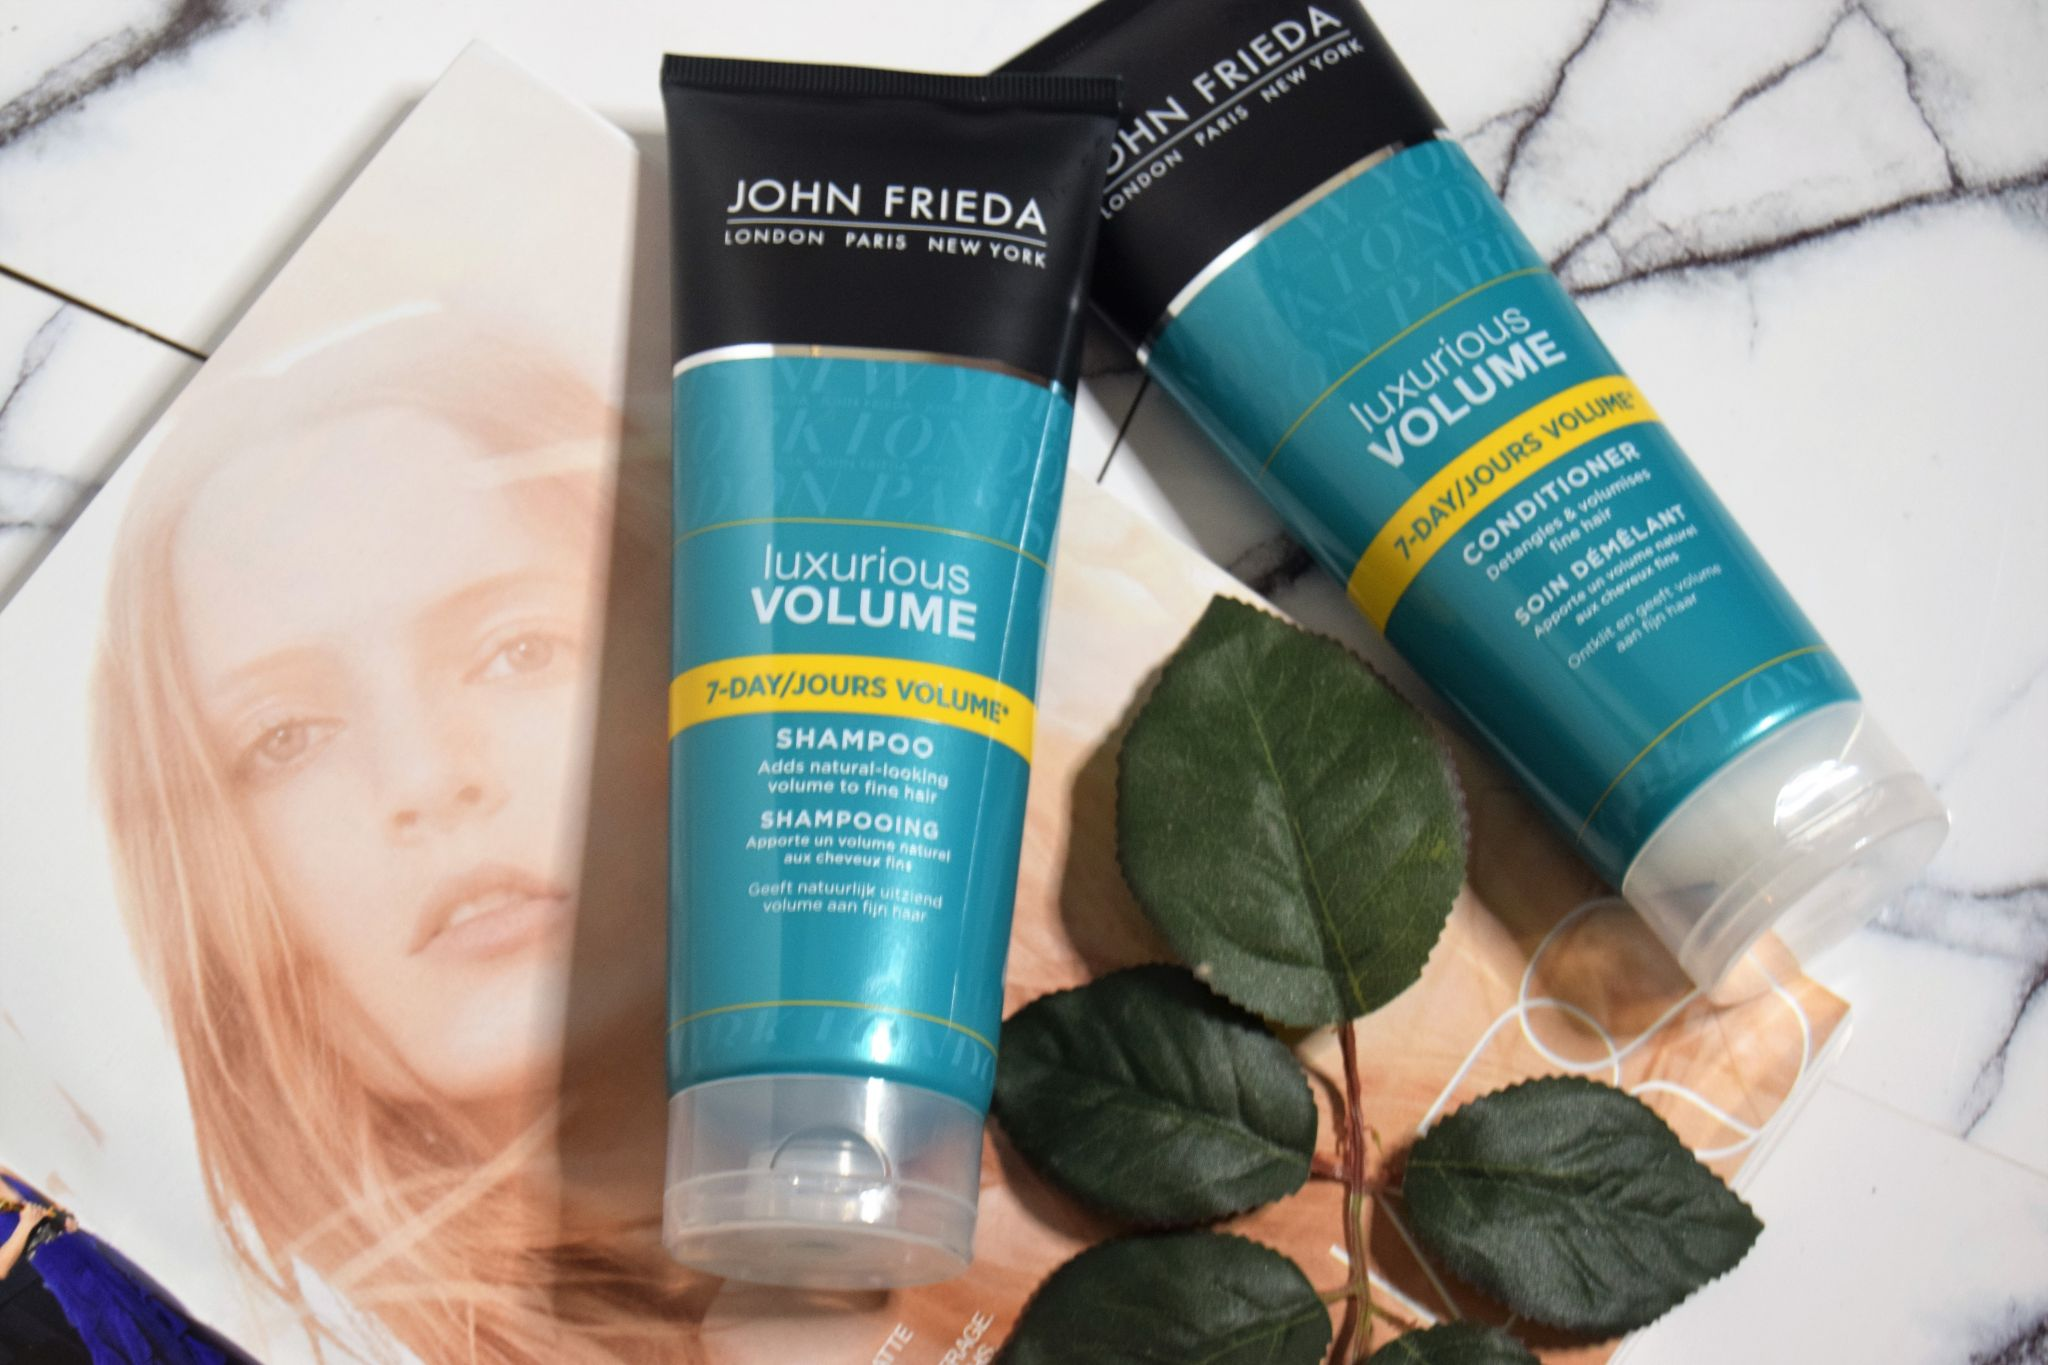 DSC 3286 1 1440x960 - Is Your Hair Ready For The Winter? John Frieda Luxurious Volume Review